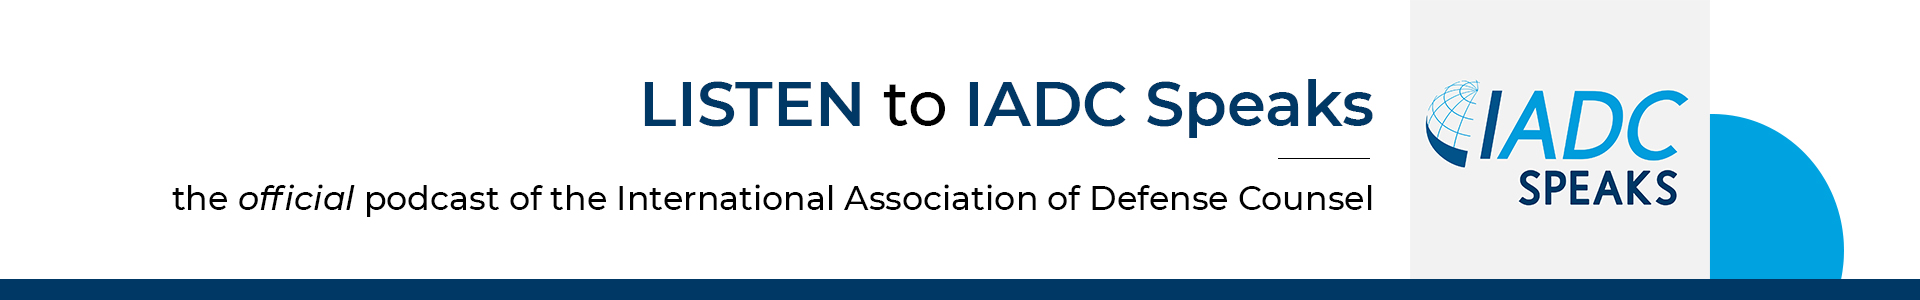 Listen to IADC Speaks, the official podcast of the IADC.